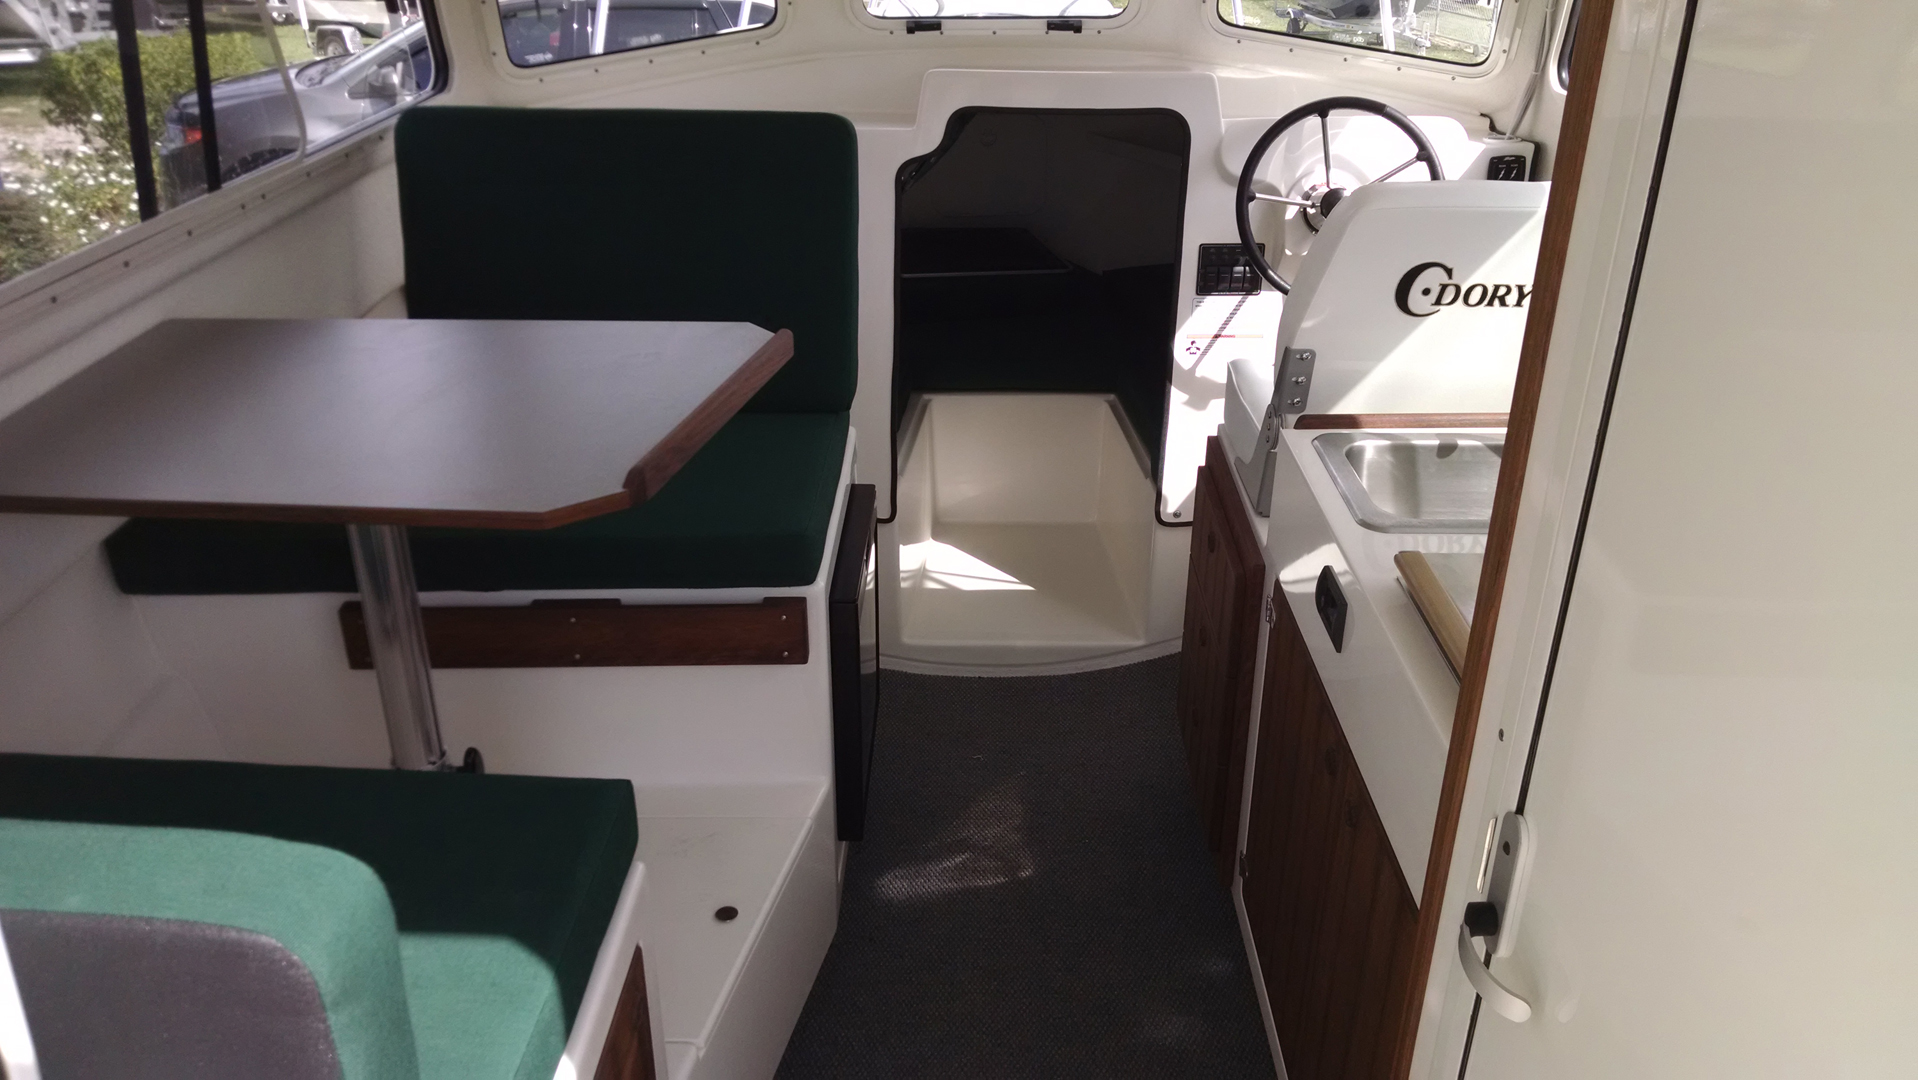 Our 25' Cruiser Boat   C-Dory Boats